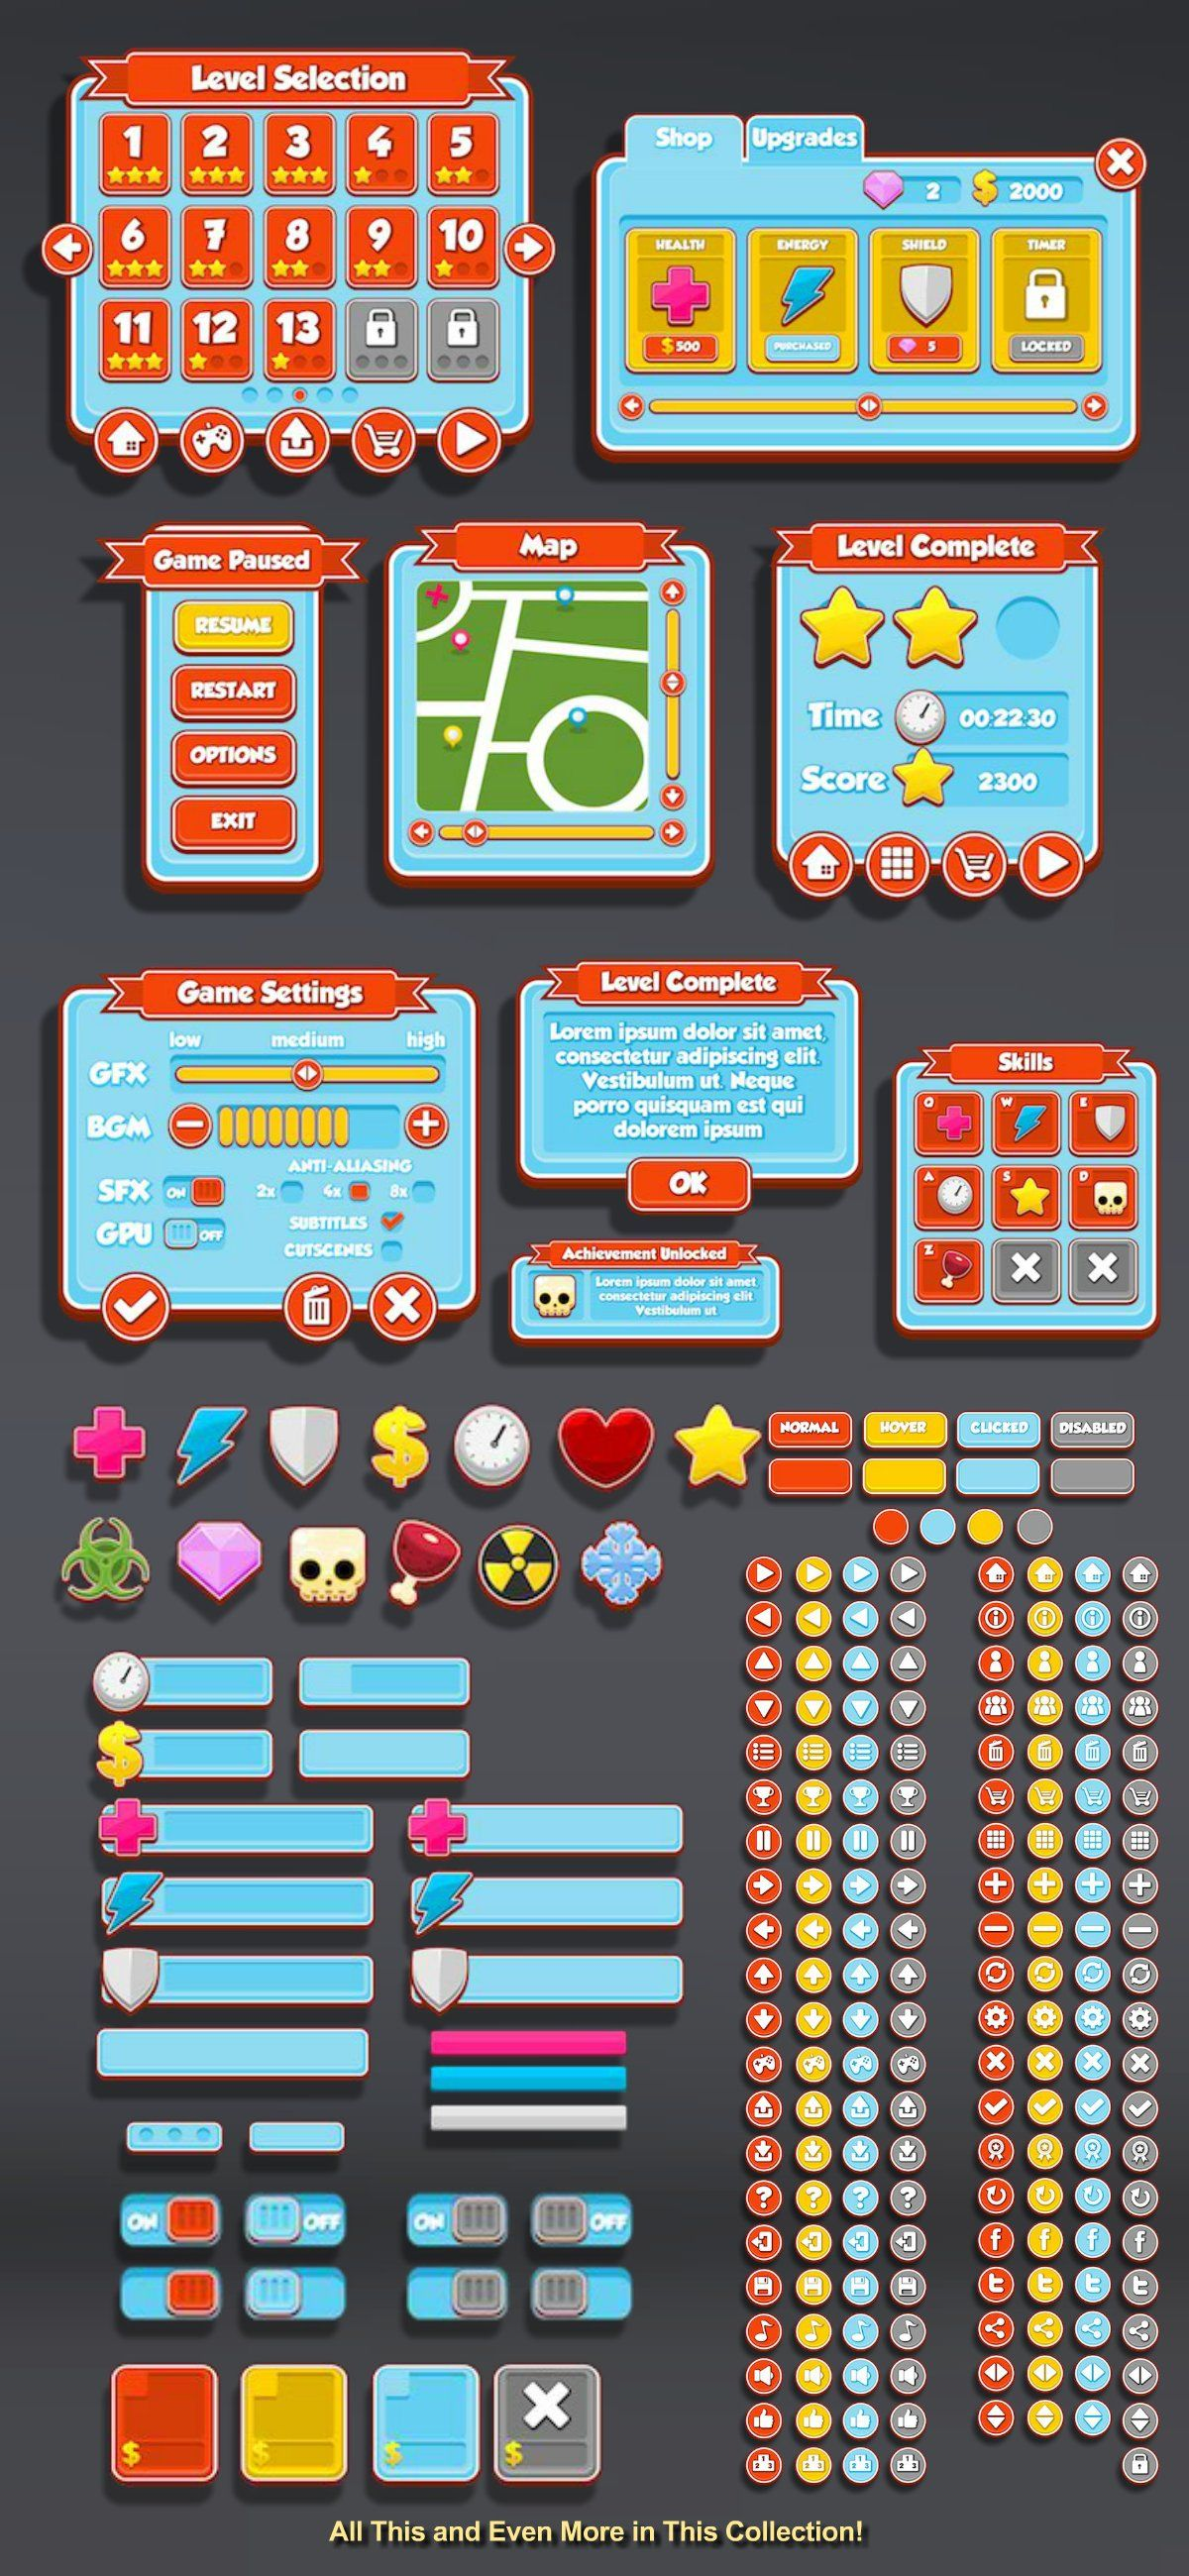 The Super Sprite Bundle: Royalty-Free Character Art for Games, Apps